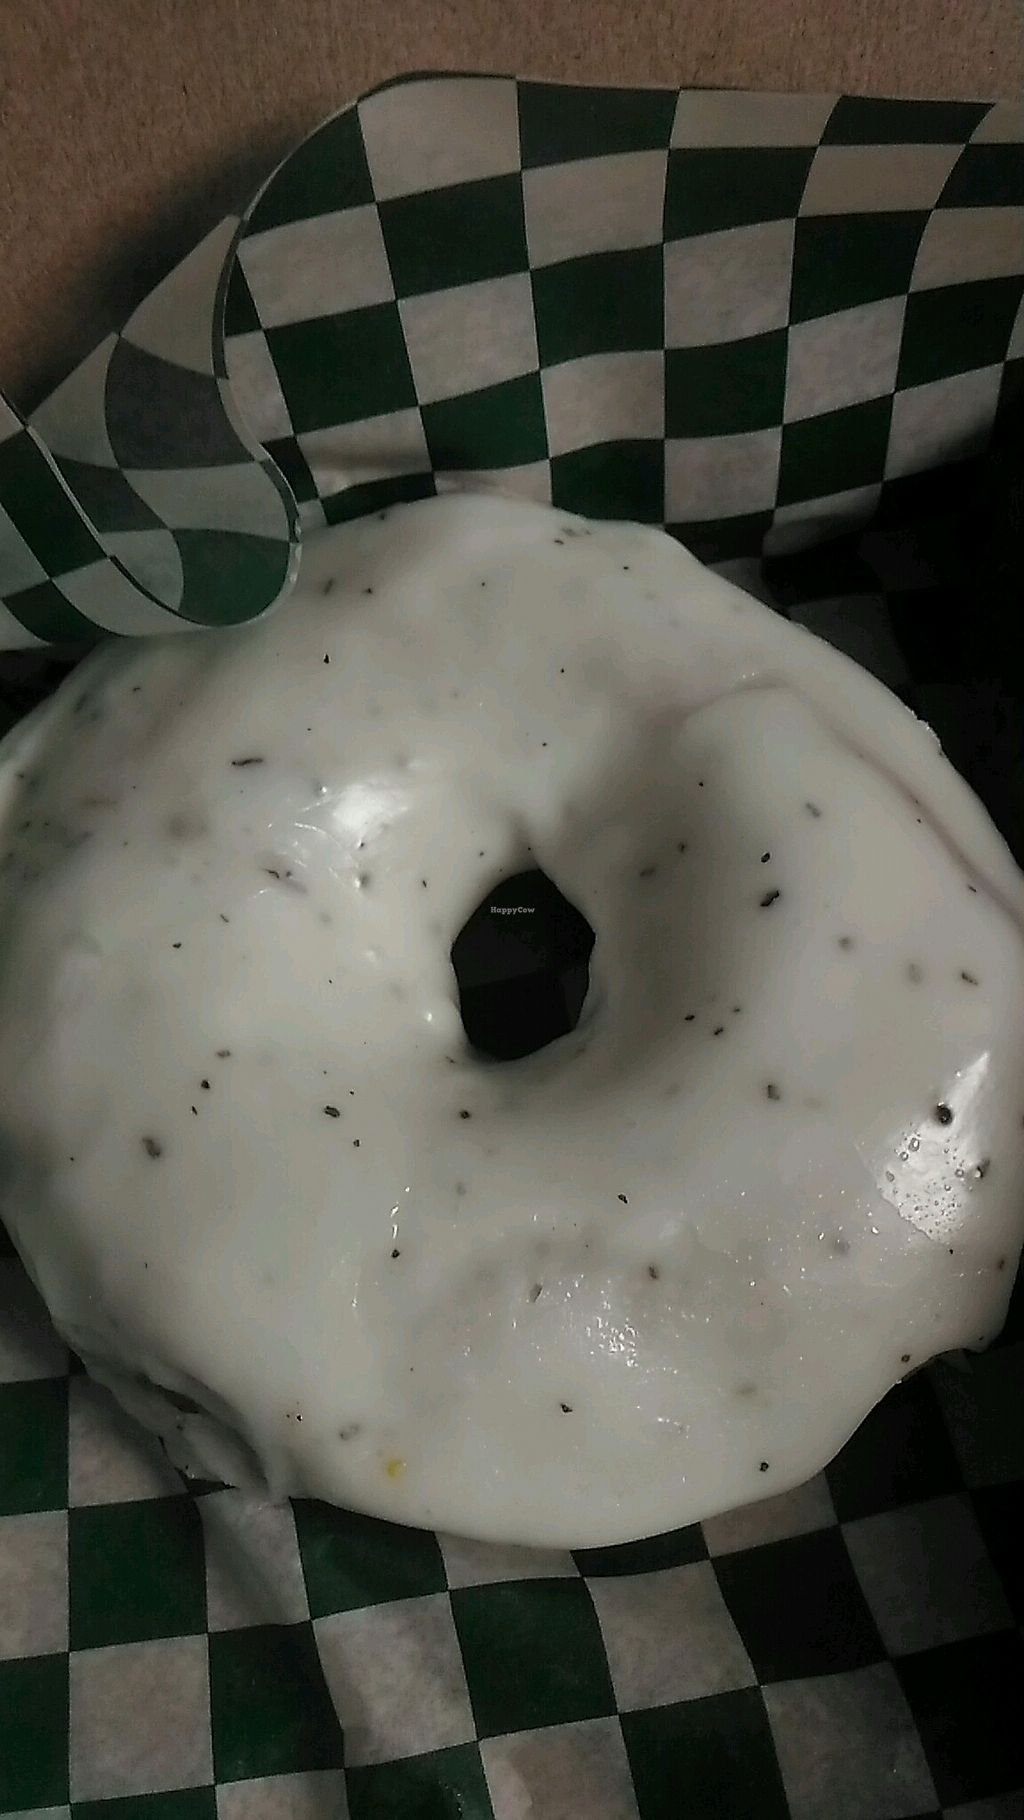 """Photo of Vandal Doughnuts  by <a href=""""/members/profile/QuothTheRaven"""">QuothTheRaven</a> <br/>vegan harbour fog donut  <br/> April 27, 2018  - <a href='/contact/abuse/image/106260/391758'>Report</a>"""